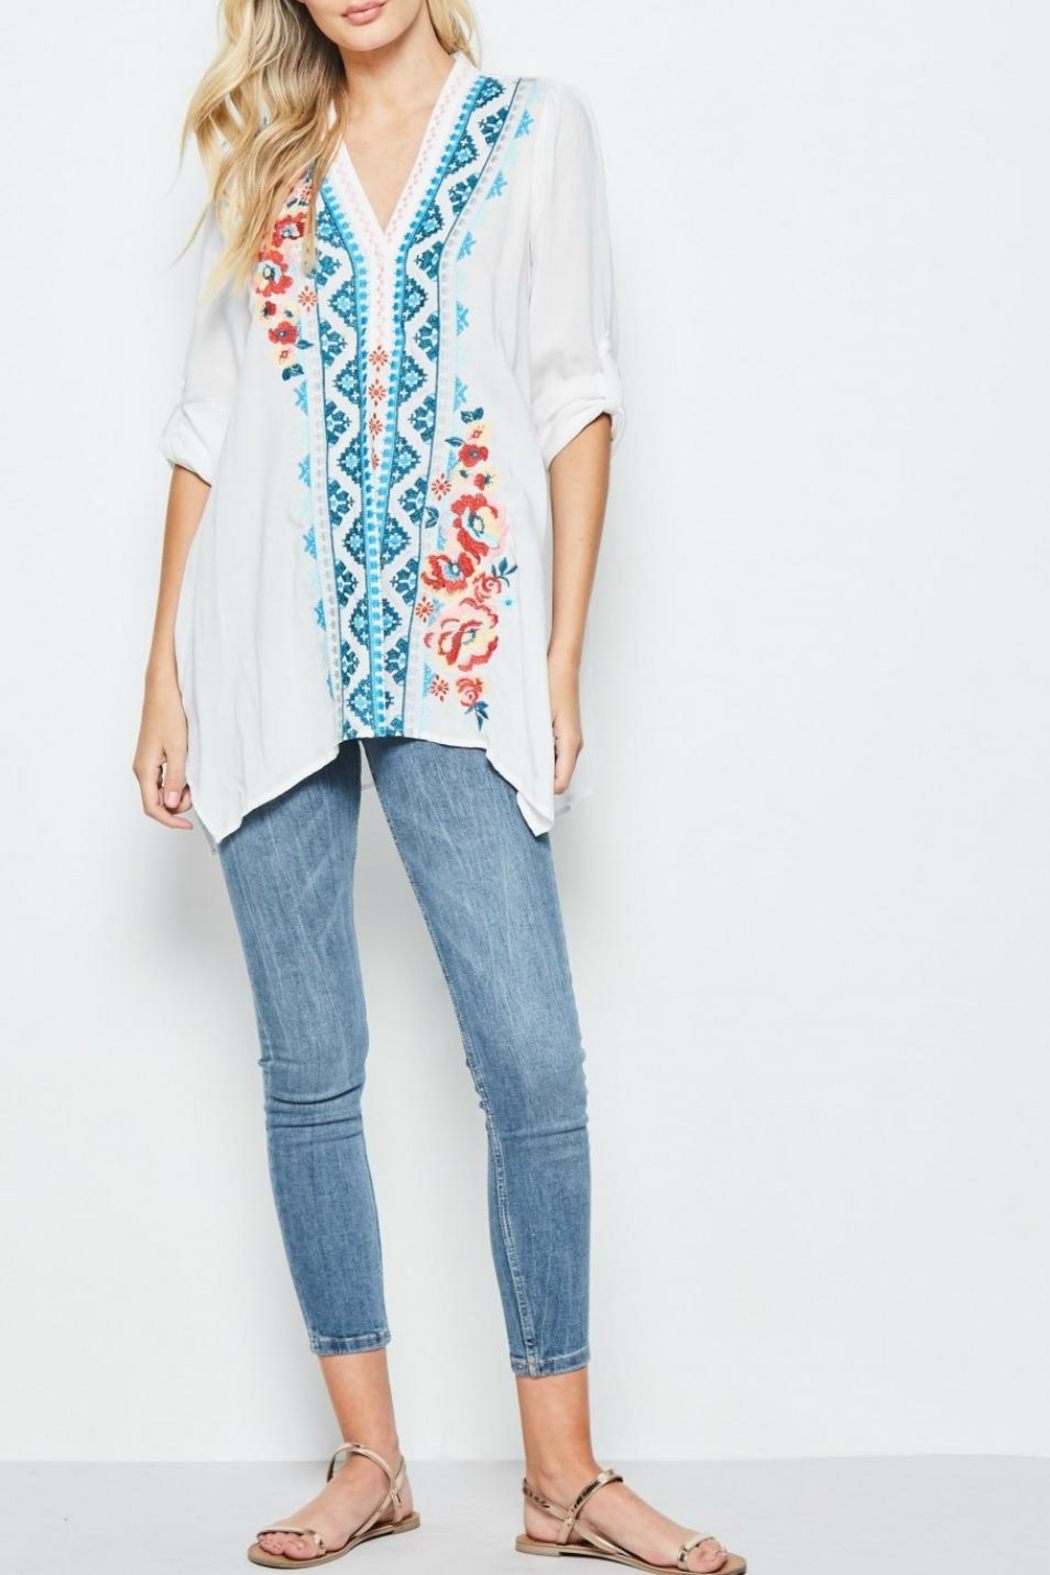 Andree by Unit Embroidered White Tunic - Front Full Image